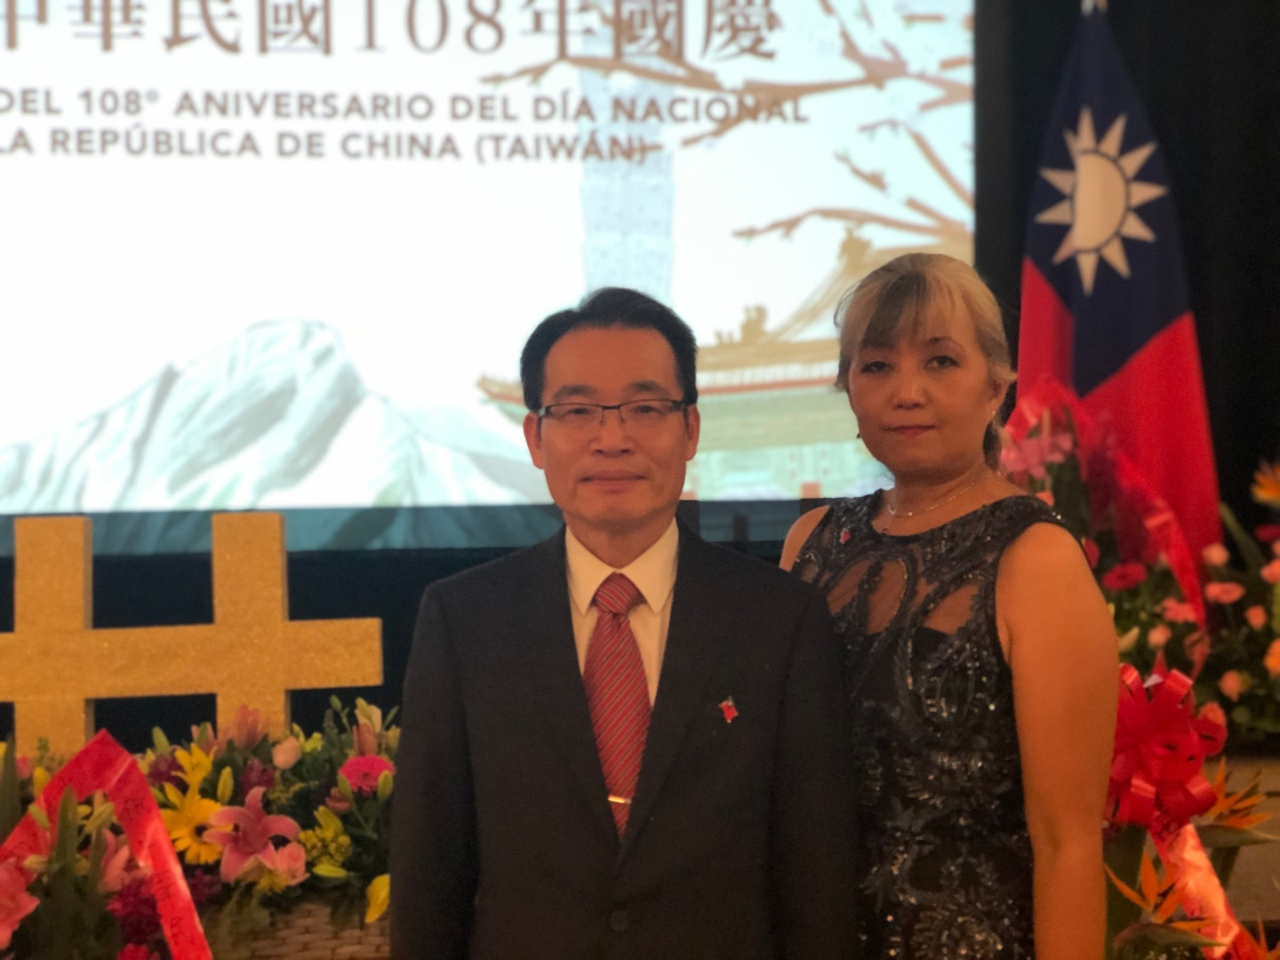 Taiwanese Rep in Mexico Holds National DayReception